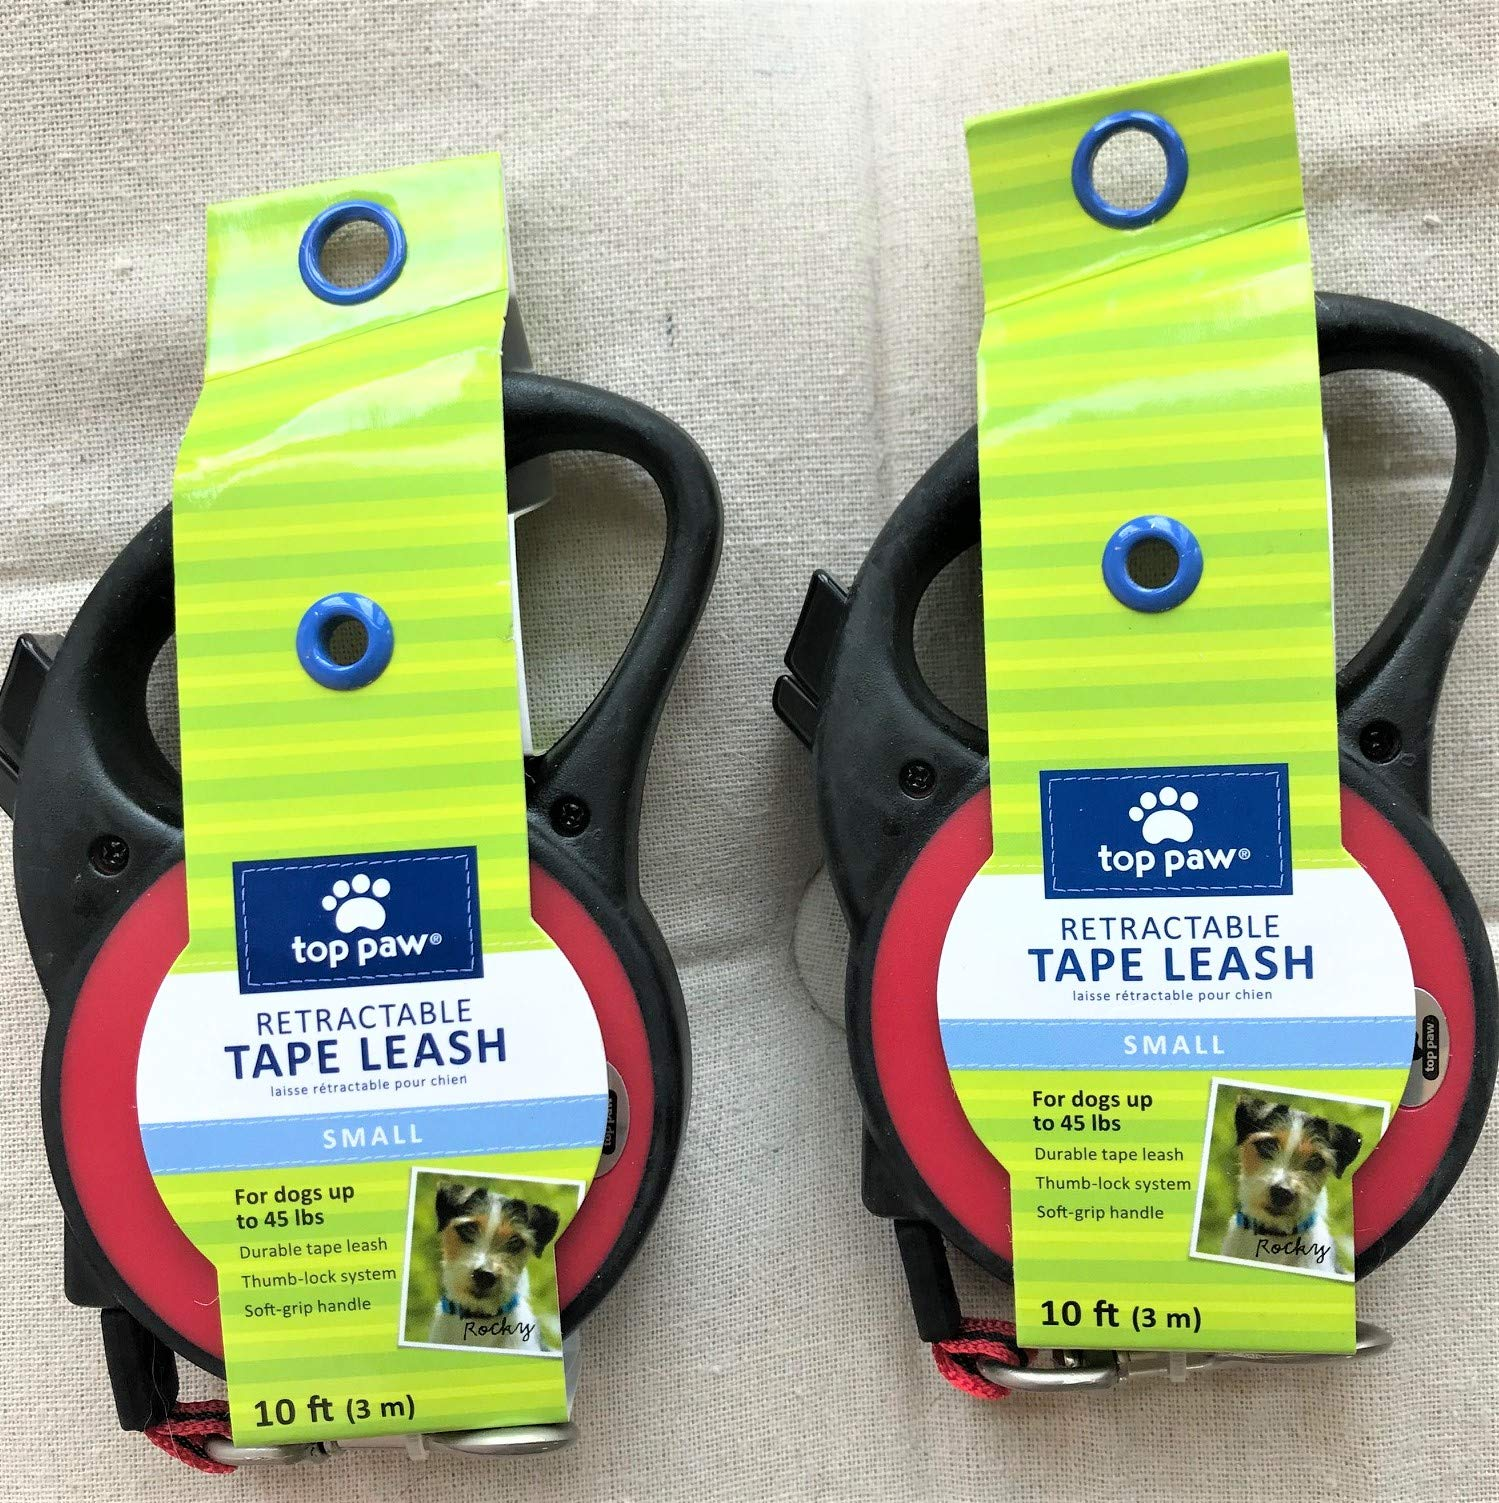 TOP PAW Retractable Tape Leash Small